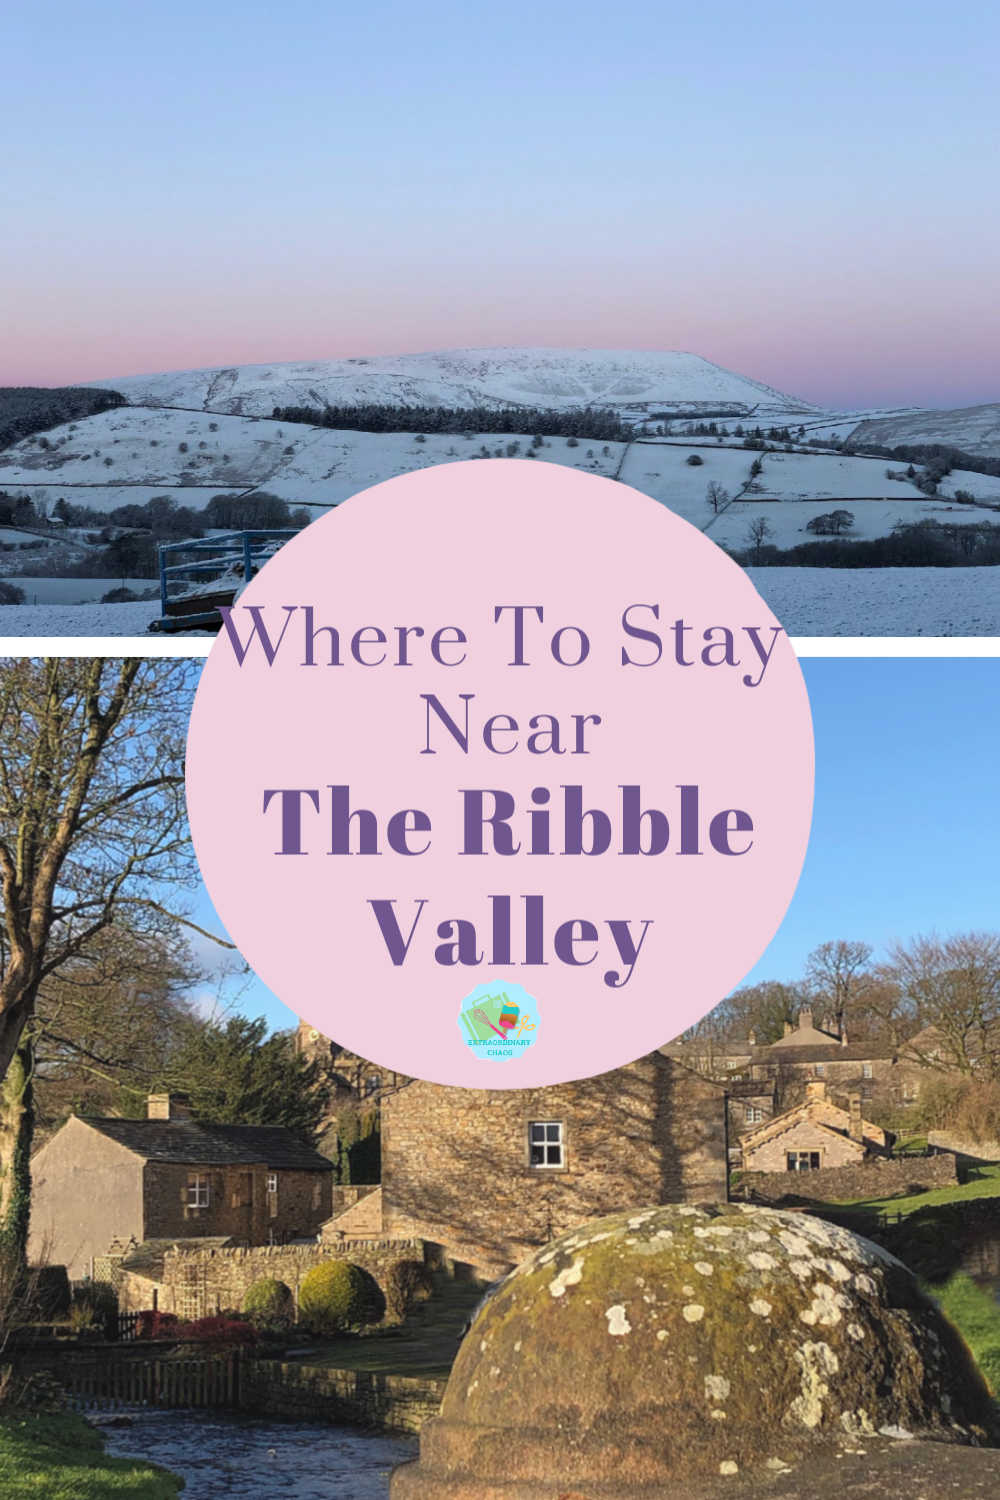 Cottages for holidays in the Ribble Valley